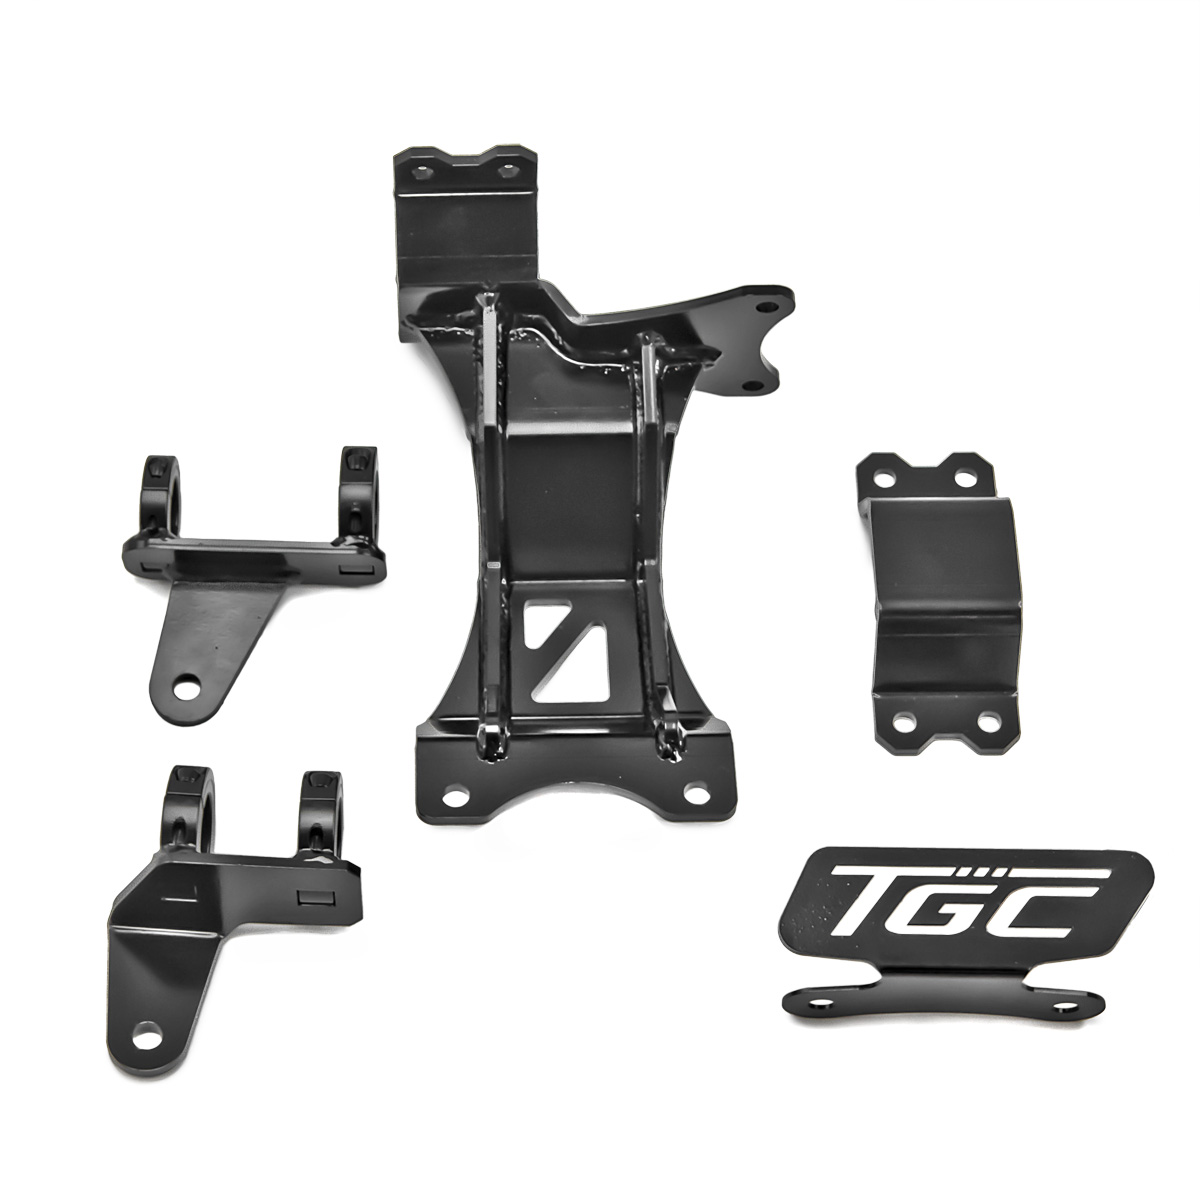 Dodge Lift Kit For 2013 Dodge Ram 3500 Truck Lift Kits